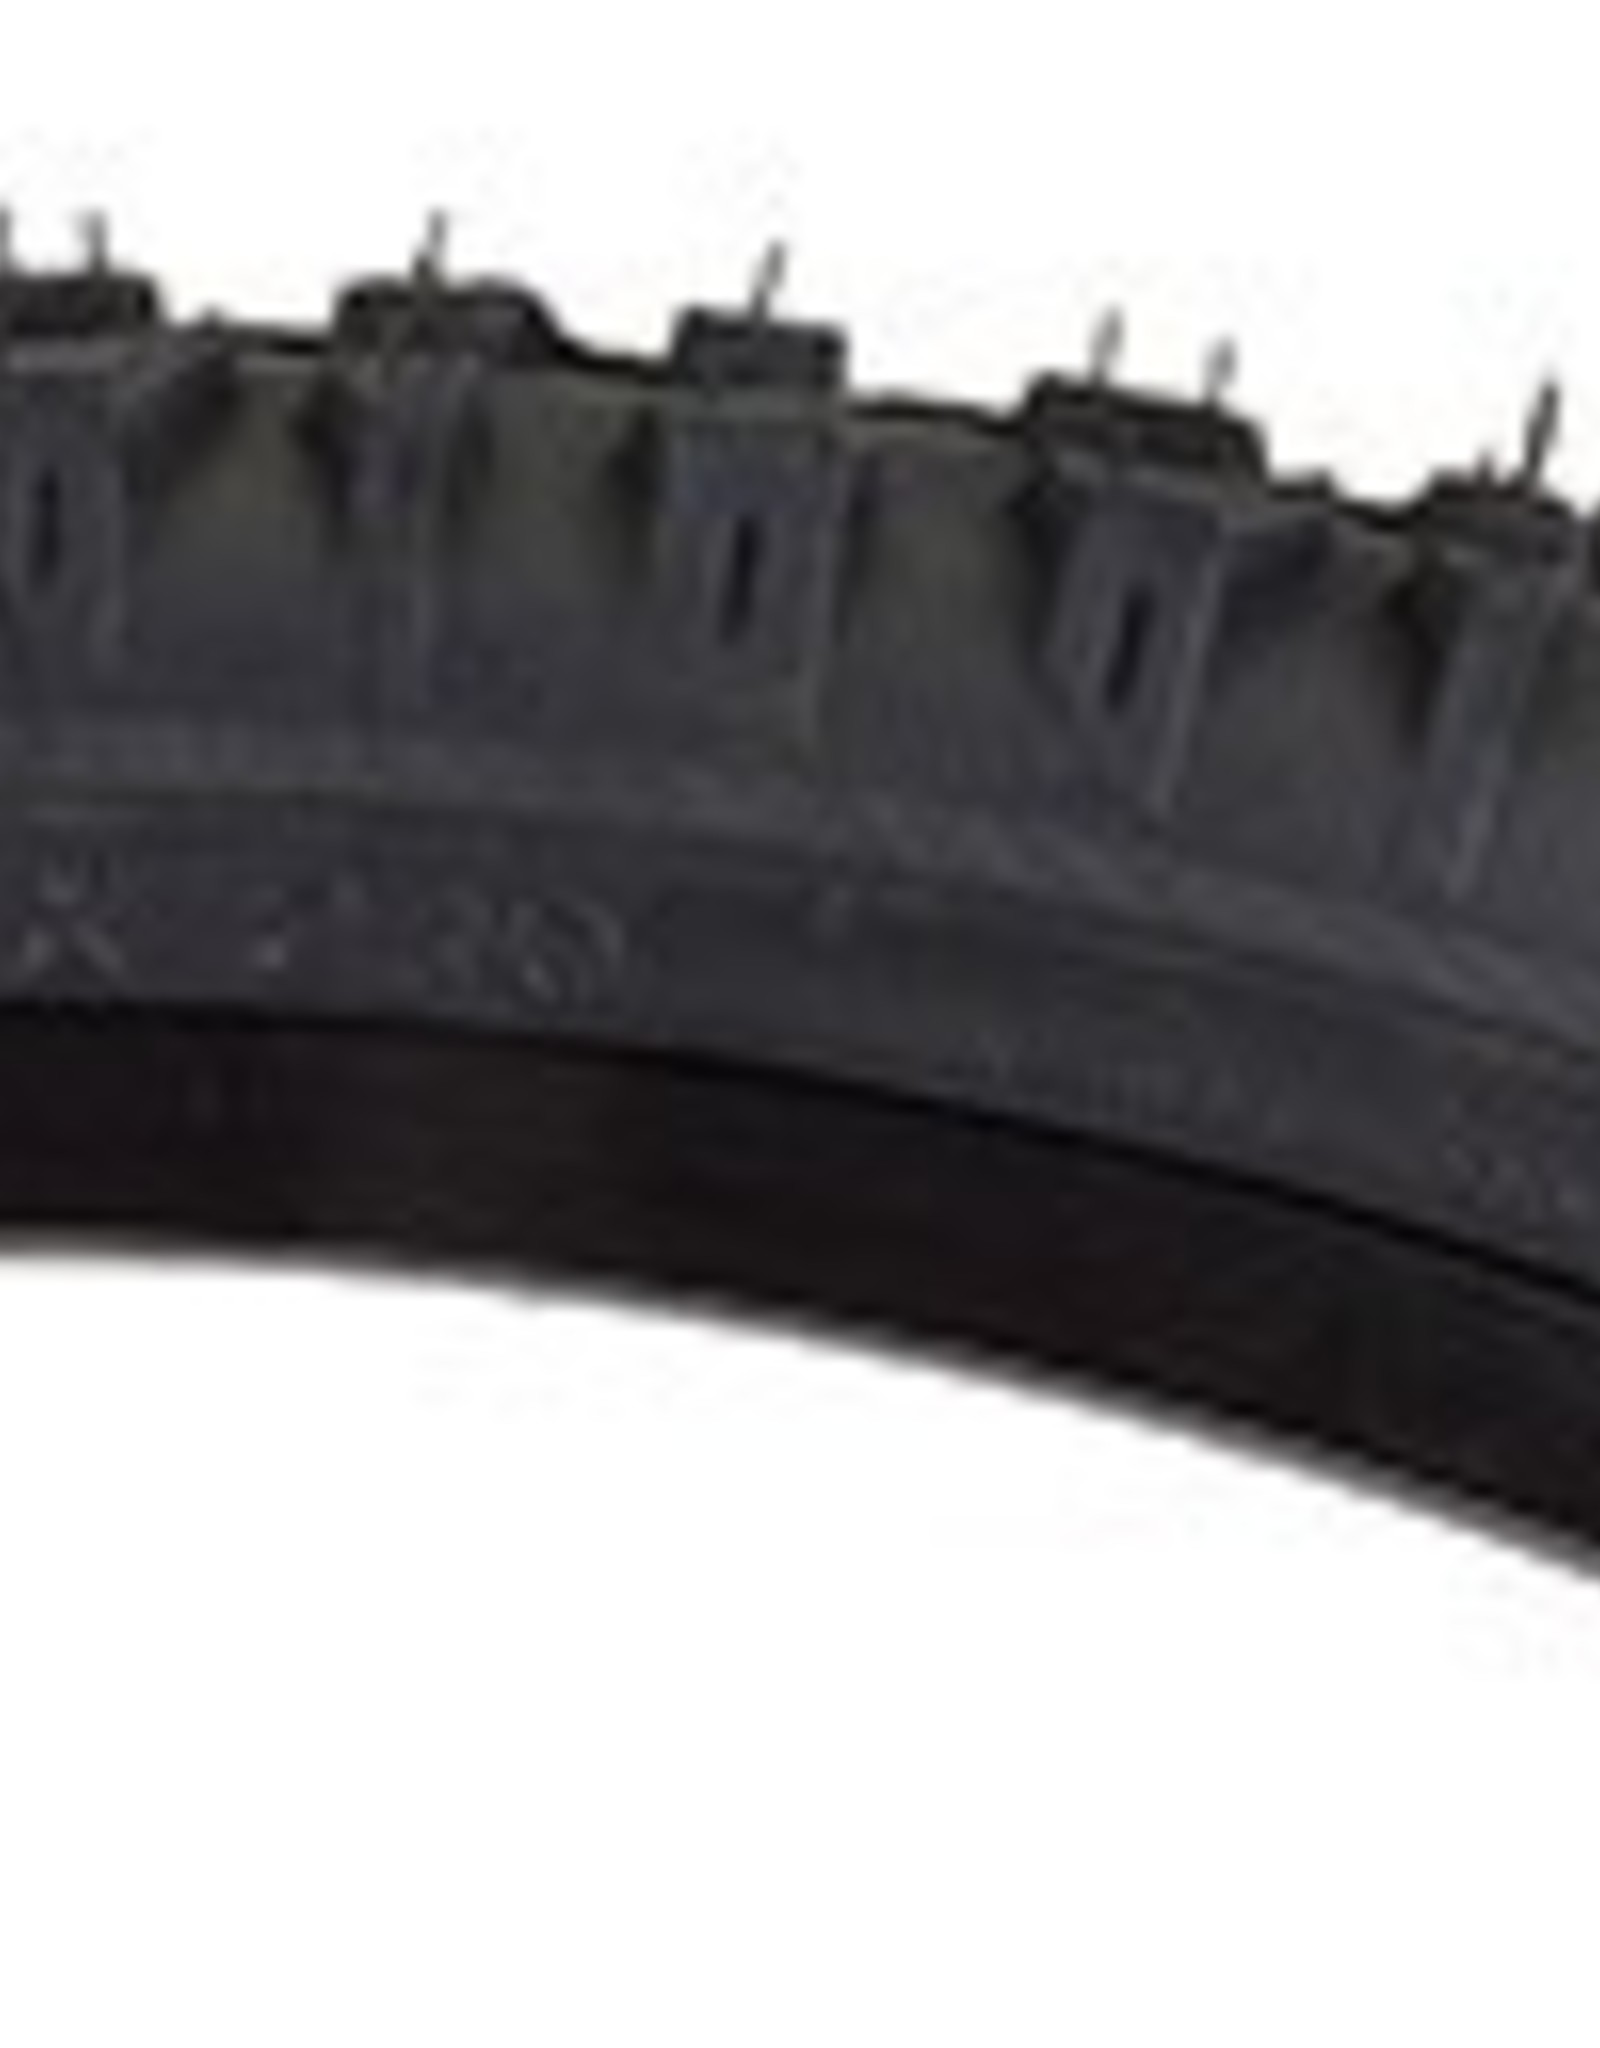 Sunlite Smoke 24x2.1 Black Tire